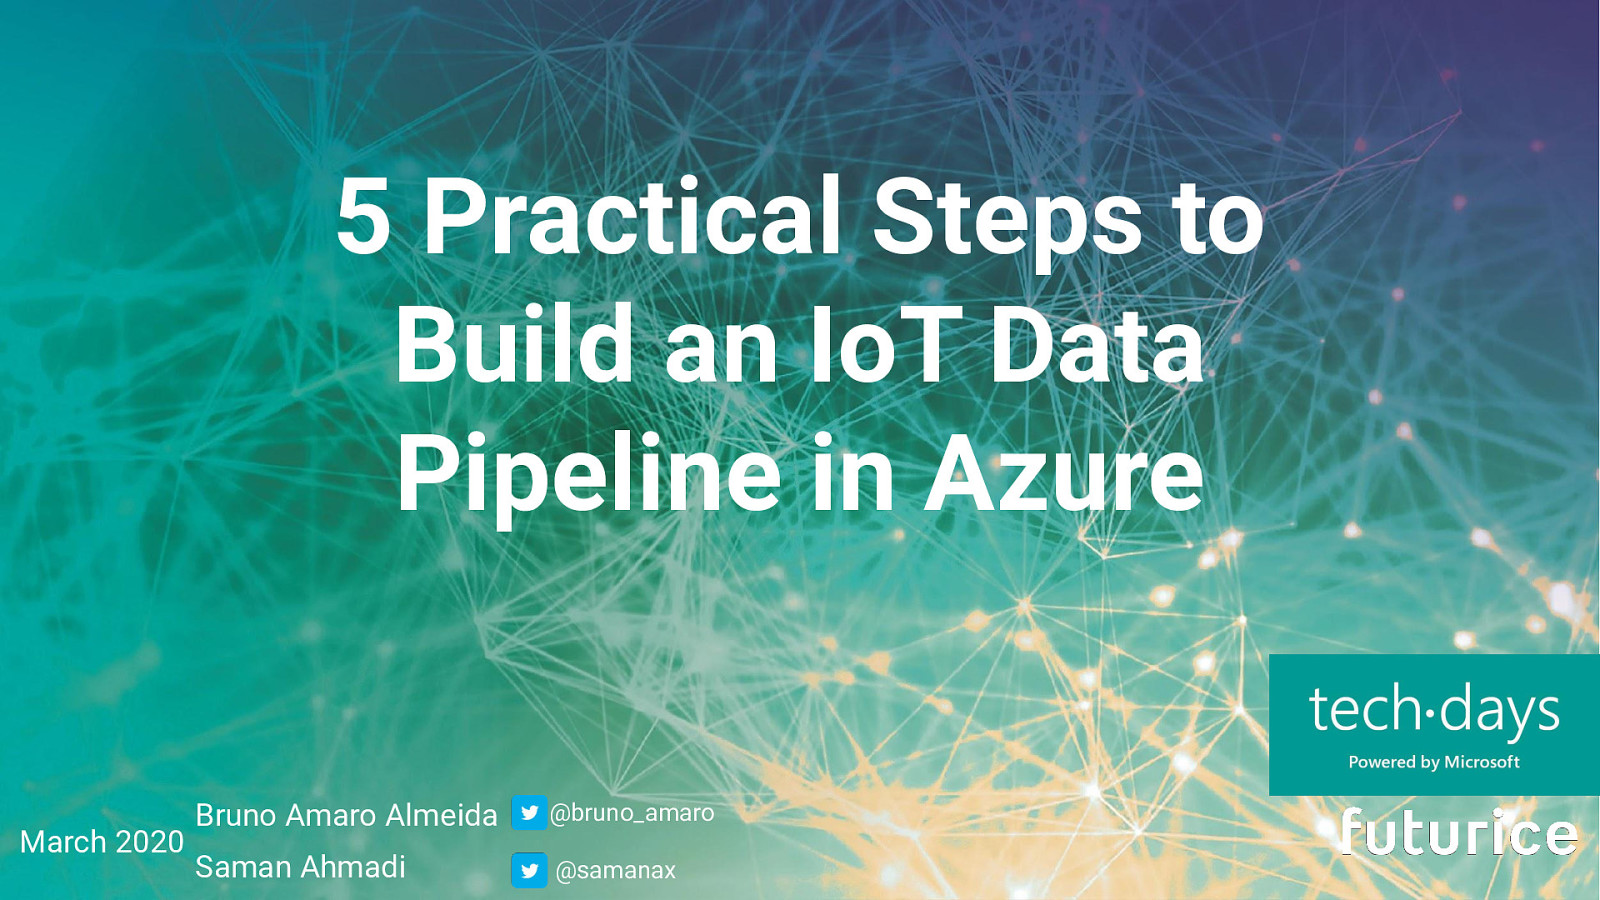 5 Practical Steps to Build an IoT Data Pipeline in Azure